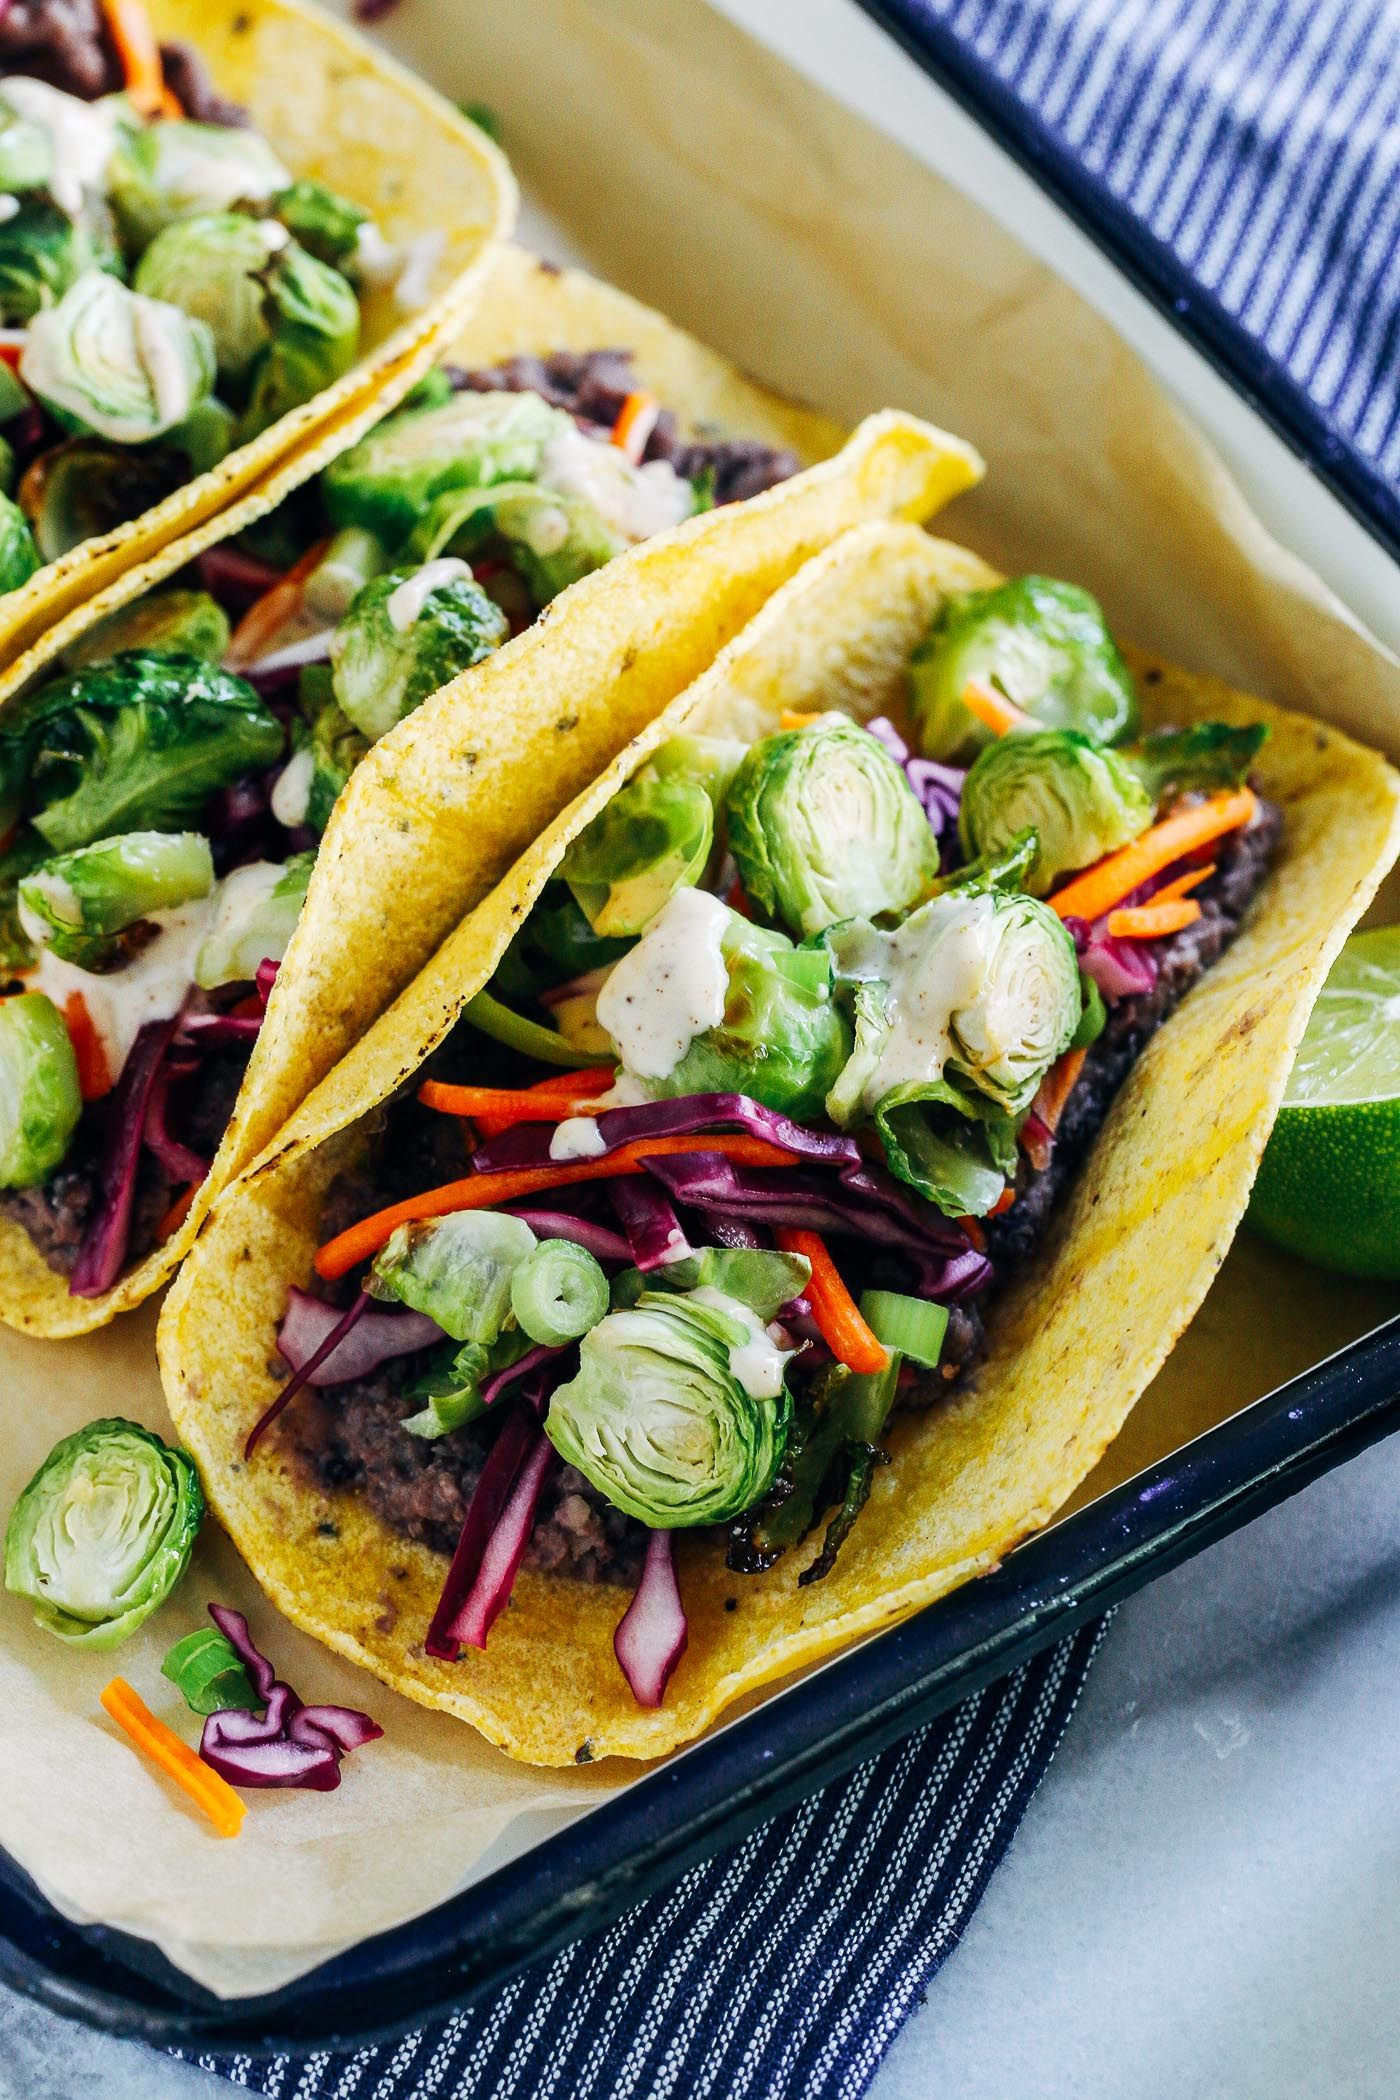 Roasted Brussels Sprout Tacos With Chipotle Aioli By Ohmyveggies Com Recipe Roasted Brussel Sprouts Brussel Sprouts Recipes